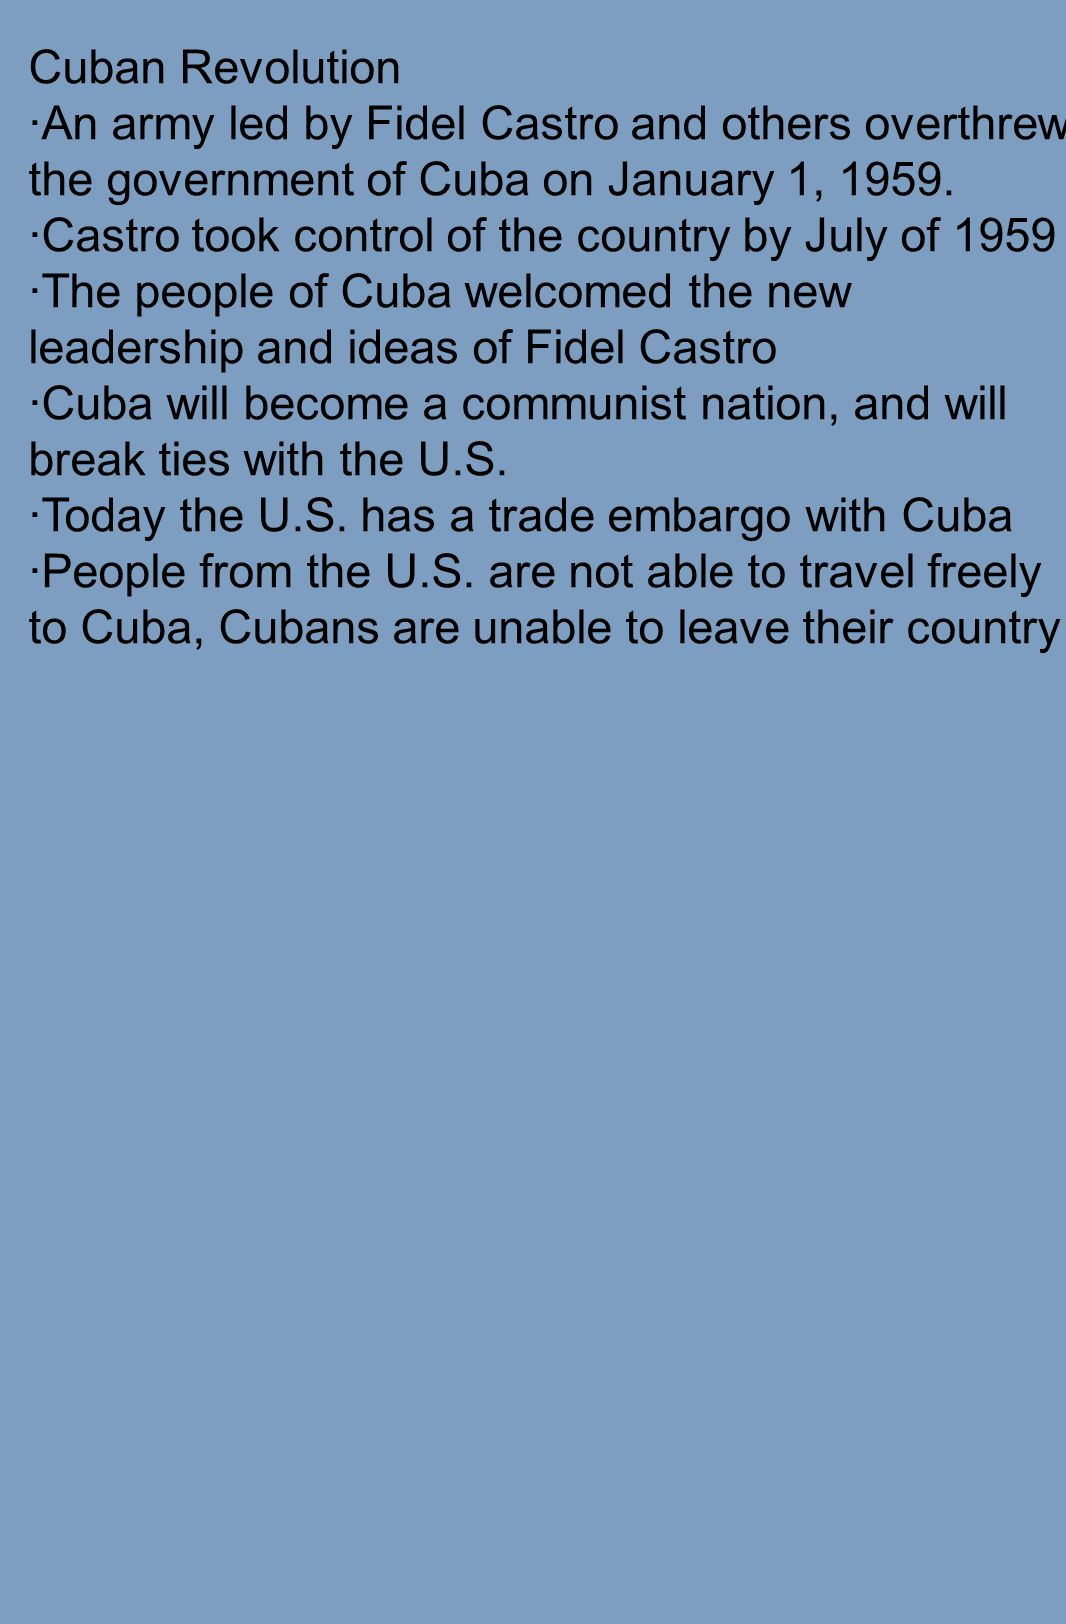 Cuban Revolution ·An army led by Fidel Castro and others overthrew the government of Cuba on January 1, 1959. ·Castro took control of the country by J